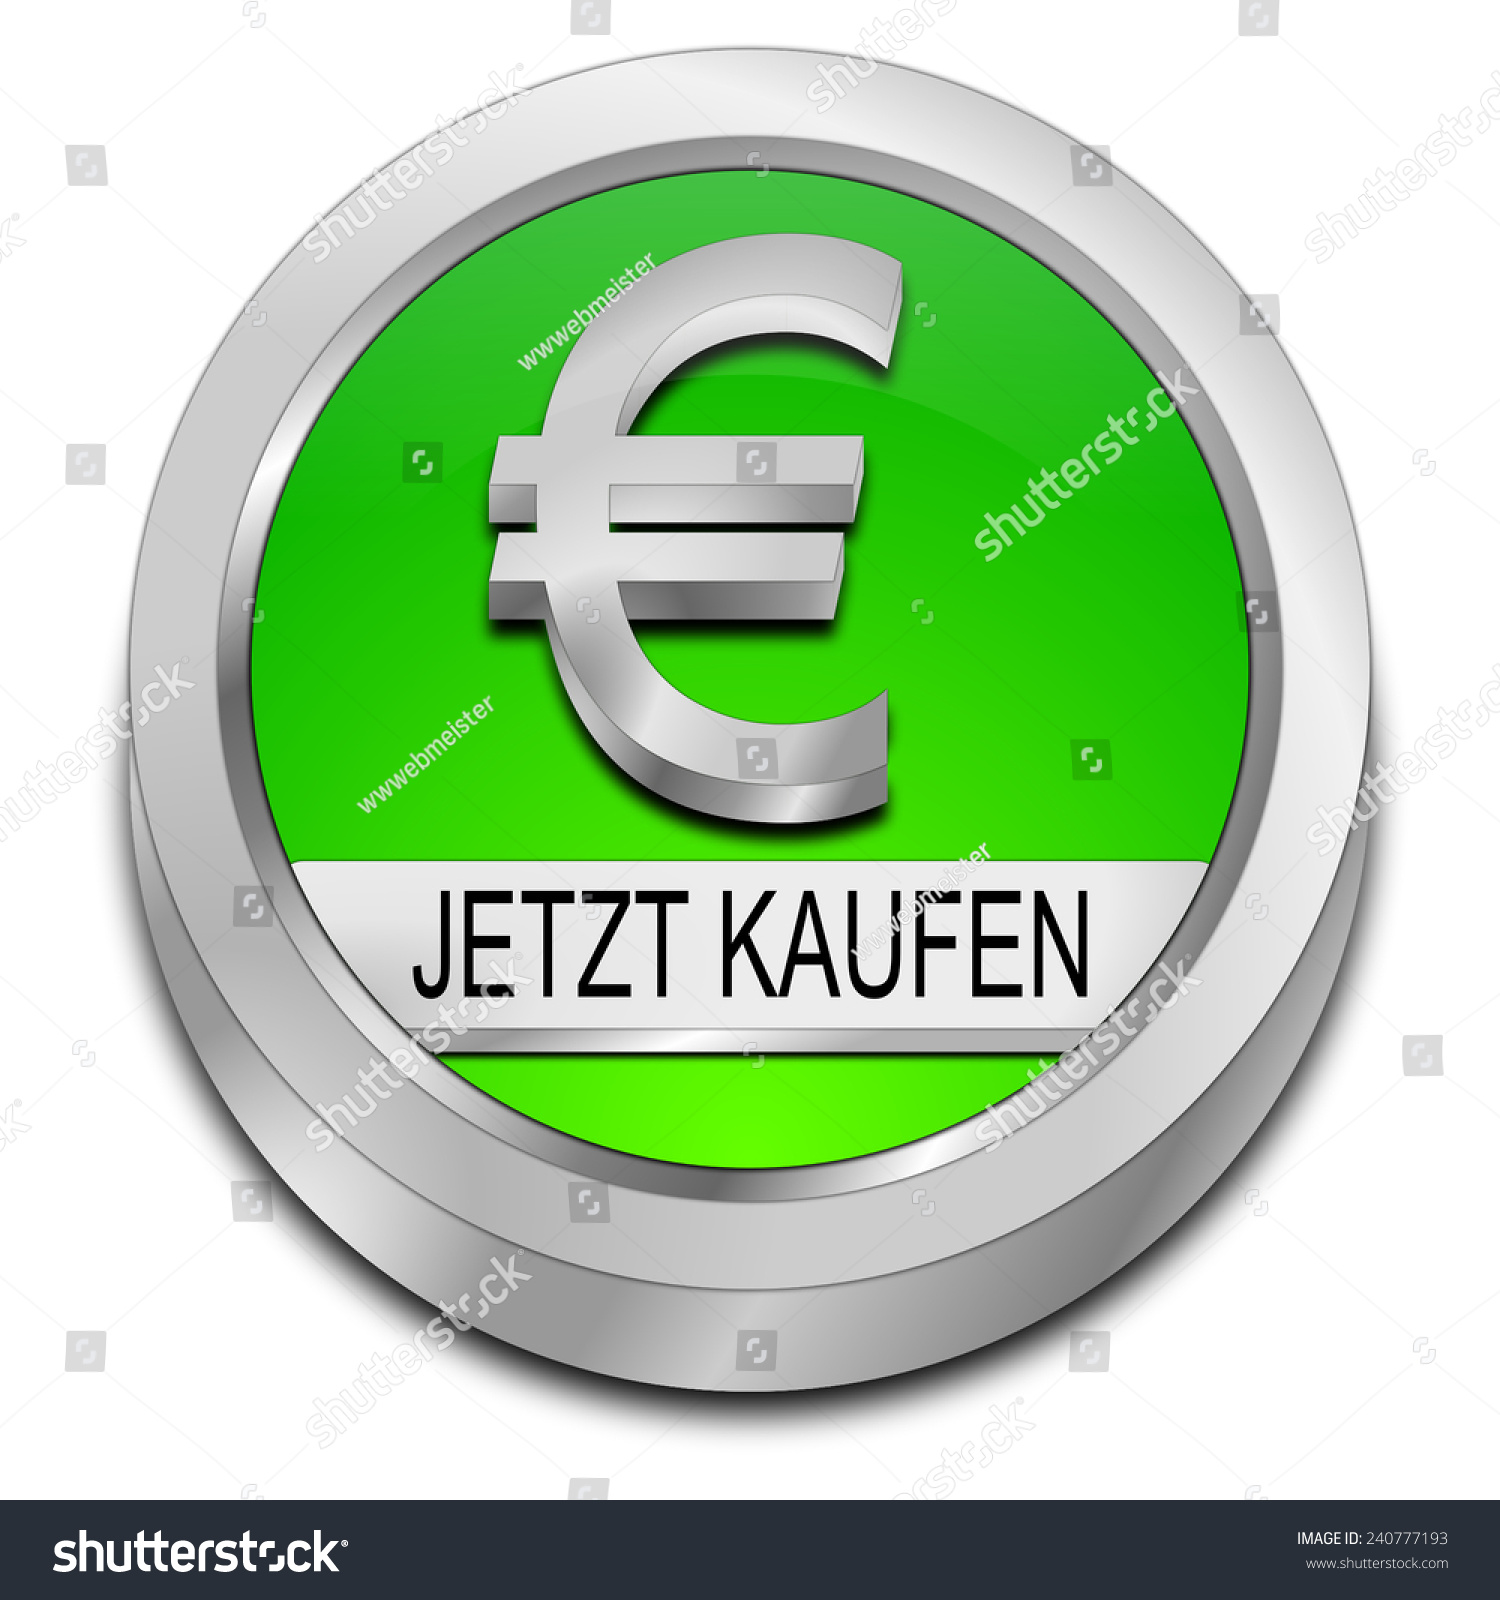 Buy Now Button Euro Symbol German Stock Illustration 240777193